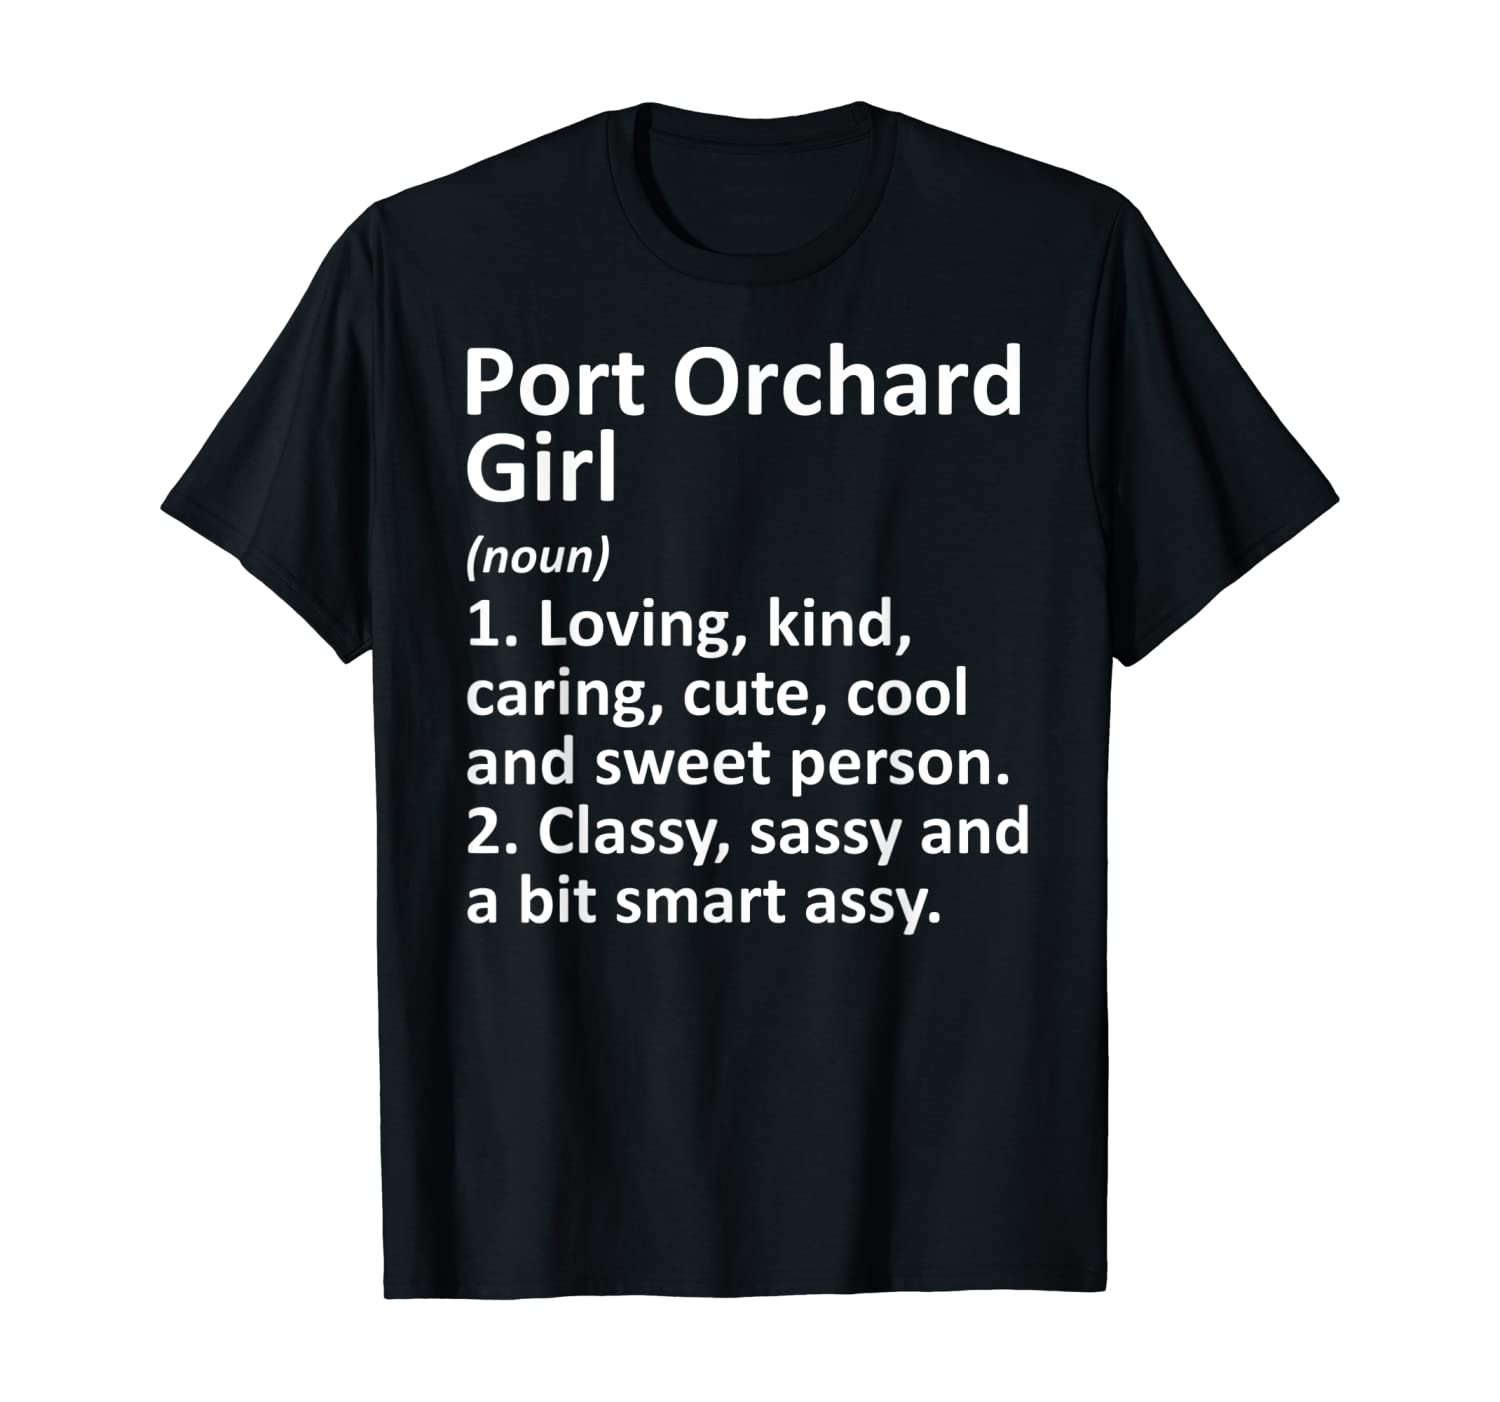 PORT ORCHARD GIRL WA WASHINGTON Funny City Home Roots Gift T-Shirt